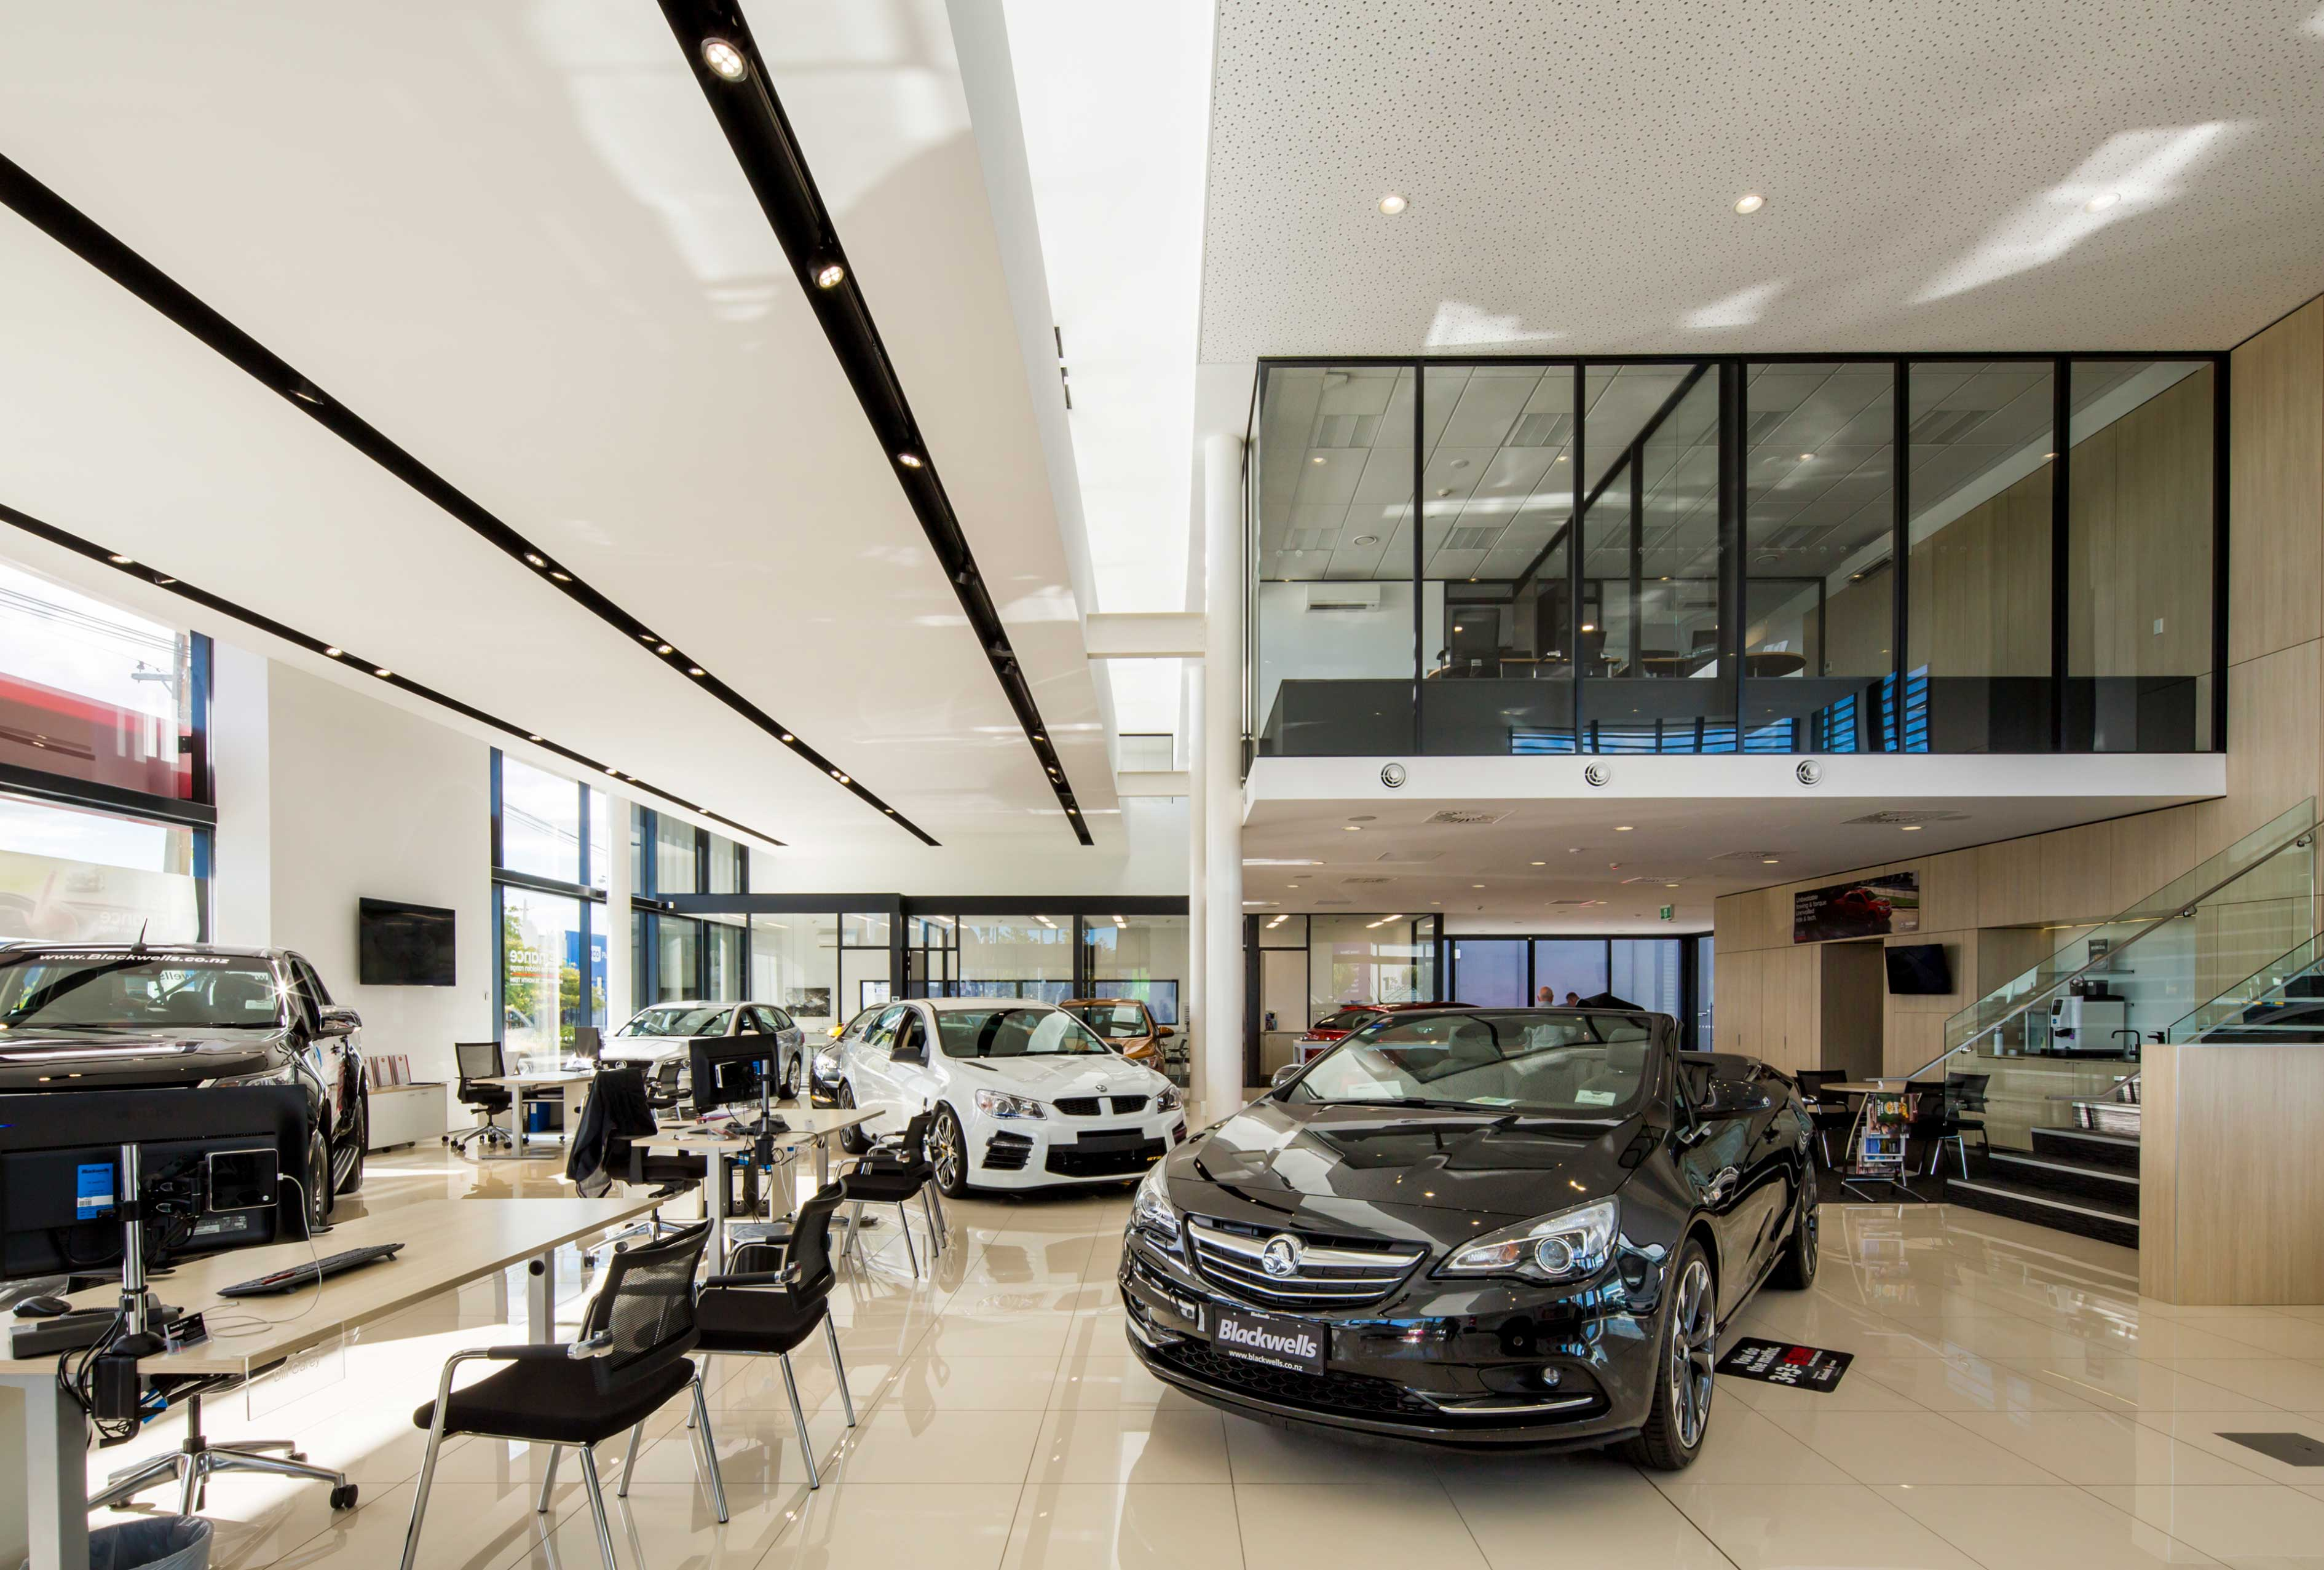 Blackwells Holden showroom interior